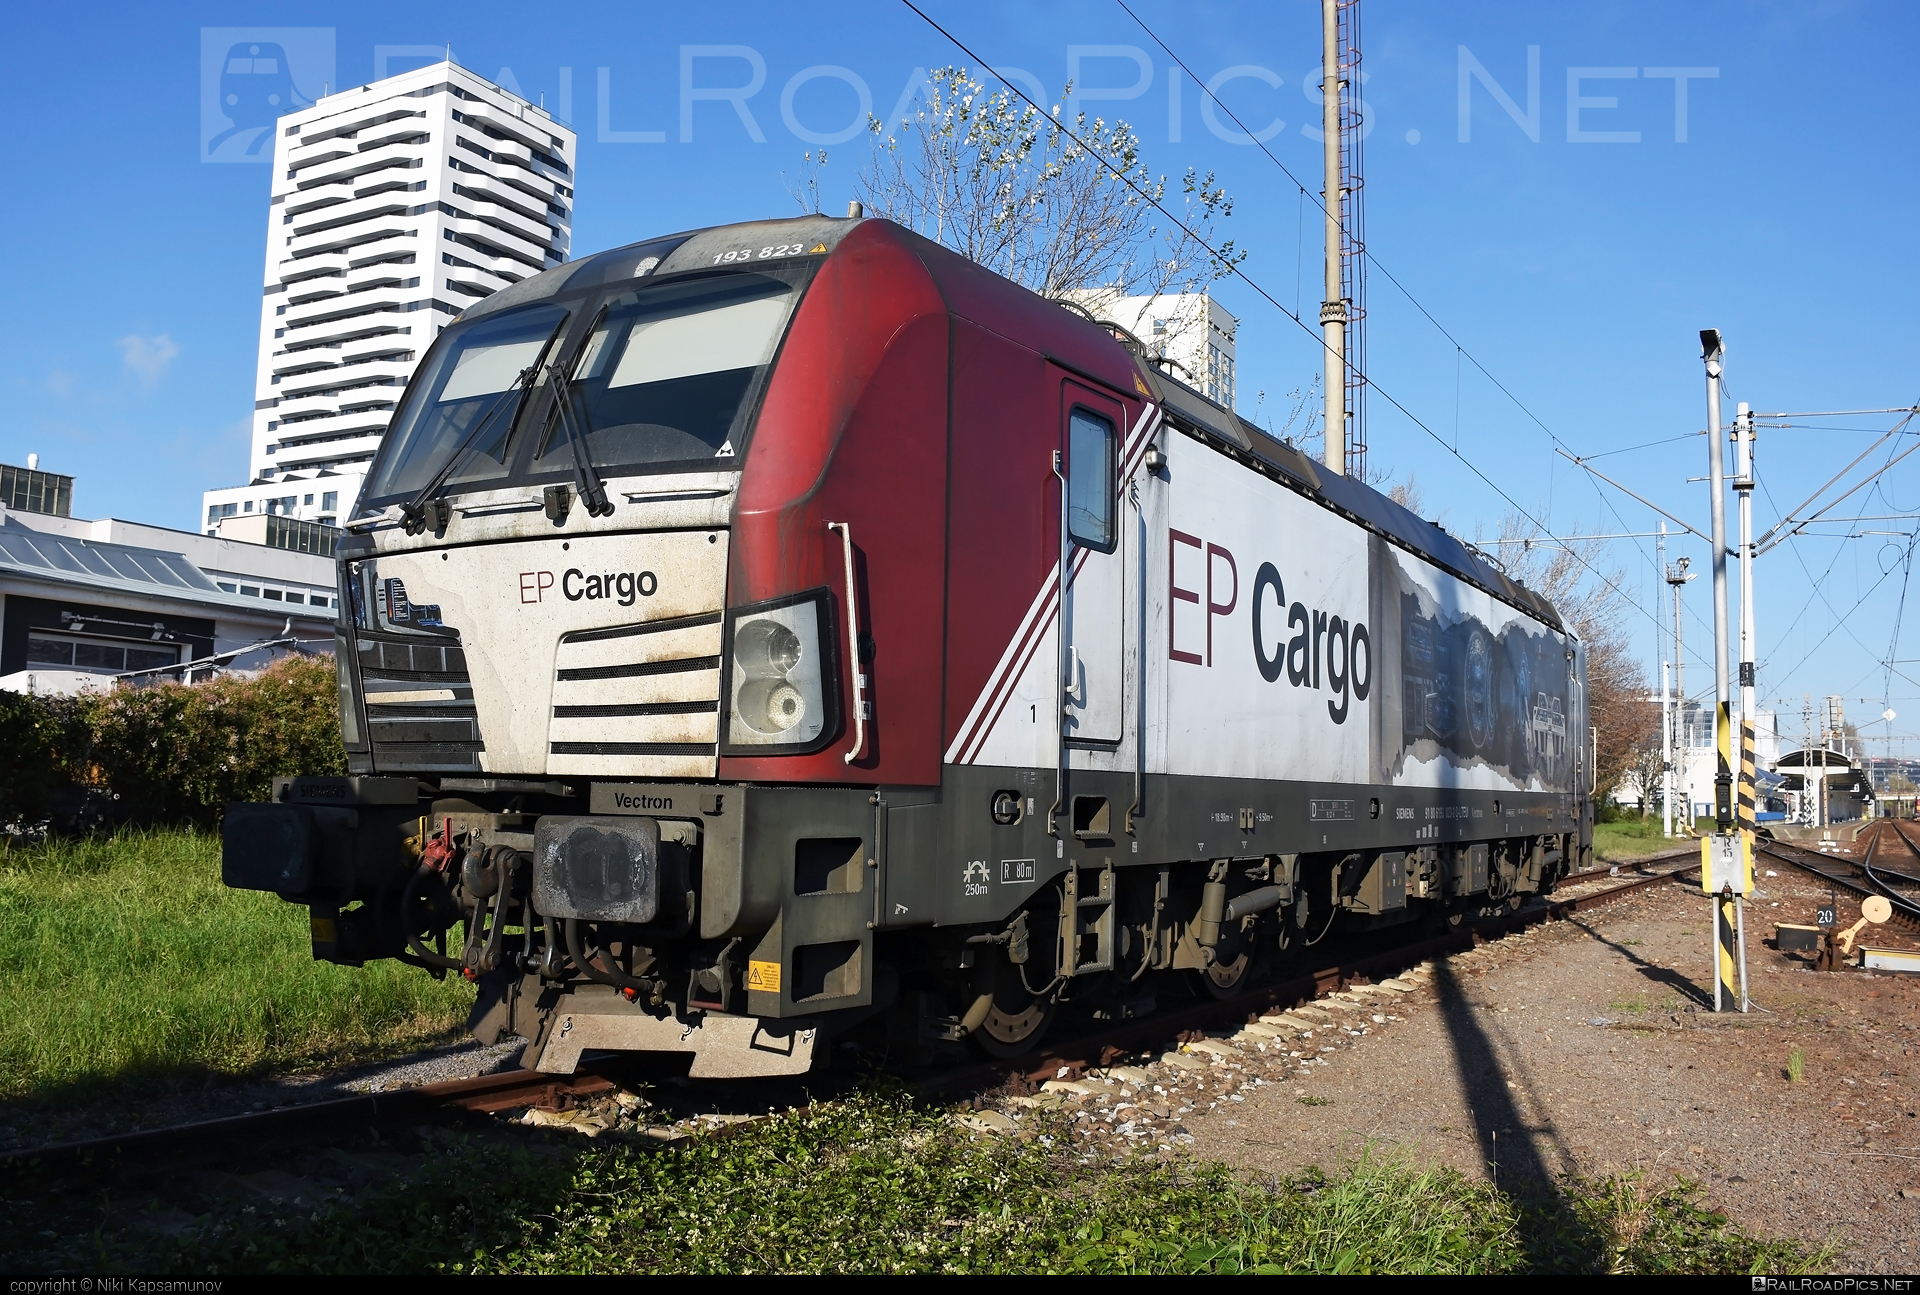 Siemens Vectron MS - 193 823 operated by PKP CARGO INTERNATIONAL a.s. #epcargo #lokotrain #lokotrainsro #pkpcargointernational #pkpcargointernationalas #siemens #siemensvectron #siemensvectronms #vectron #vectronms